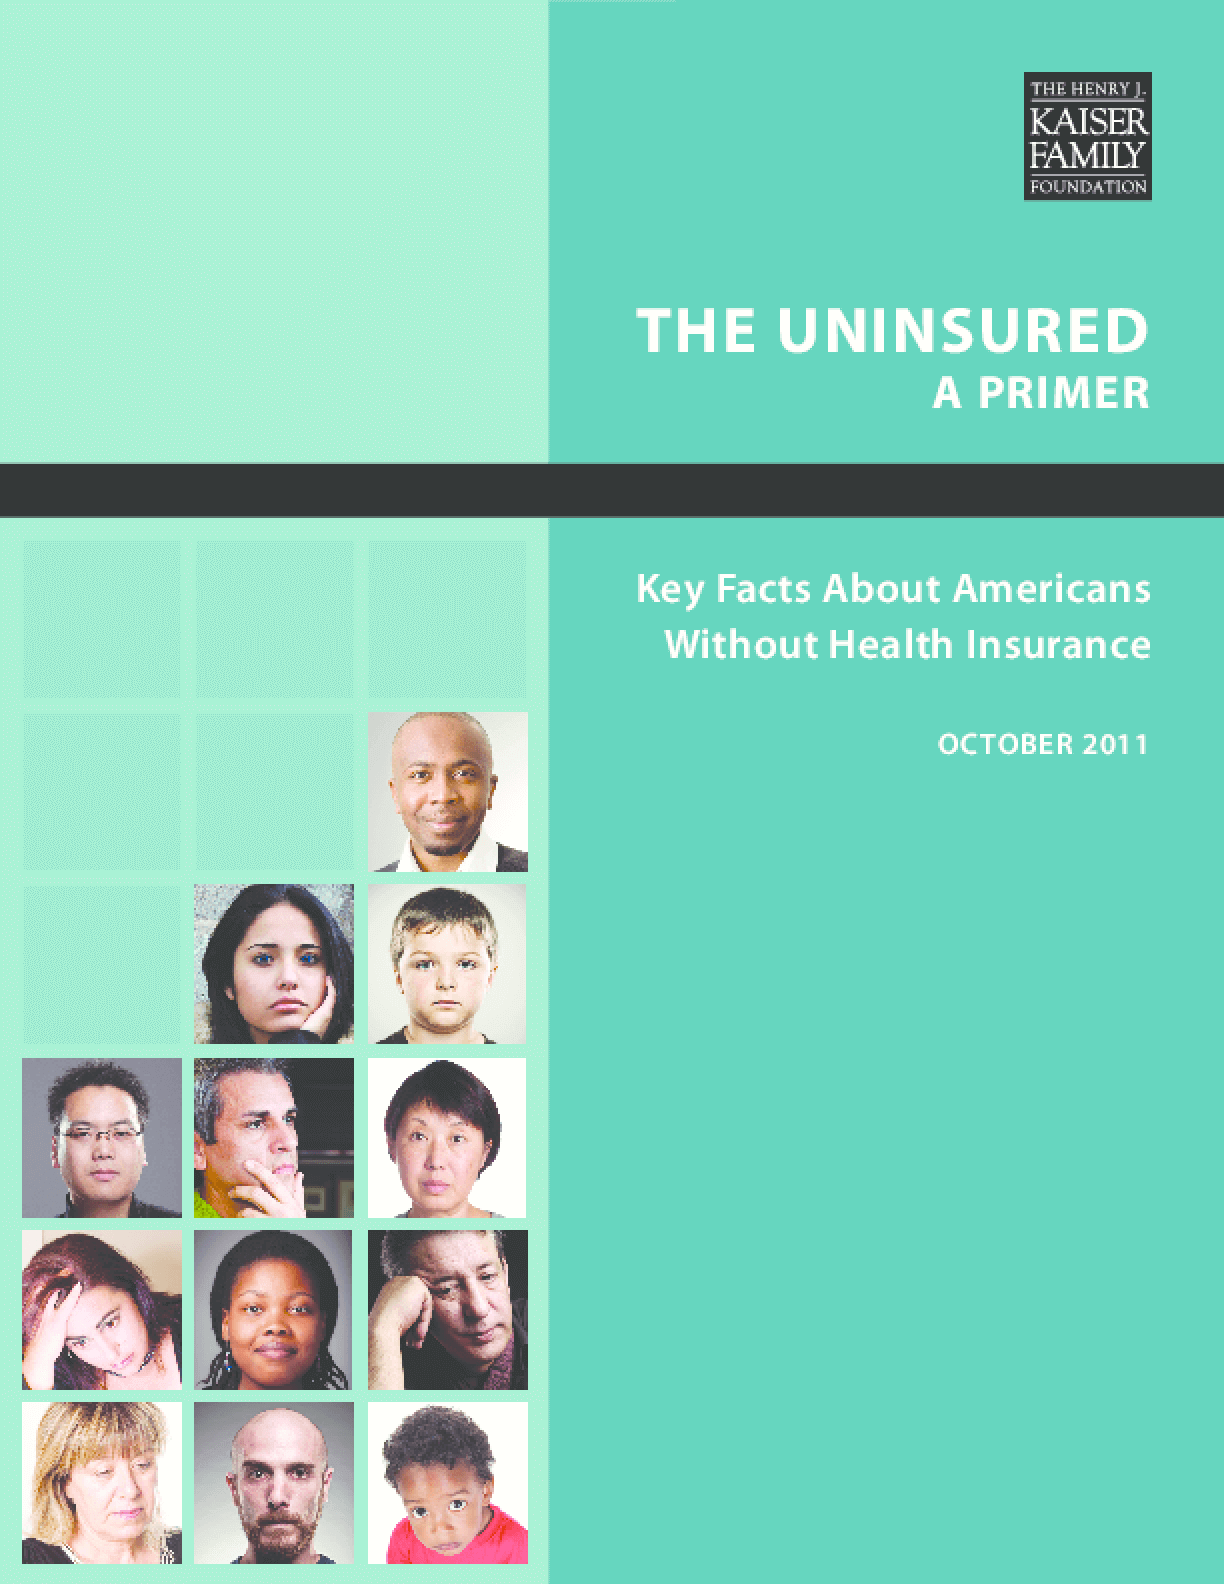 The Uninsured: A Primer 2011